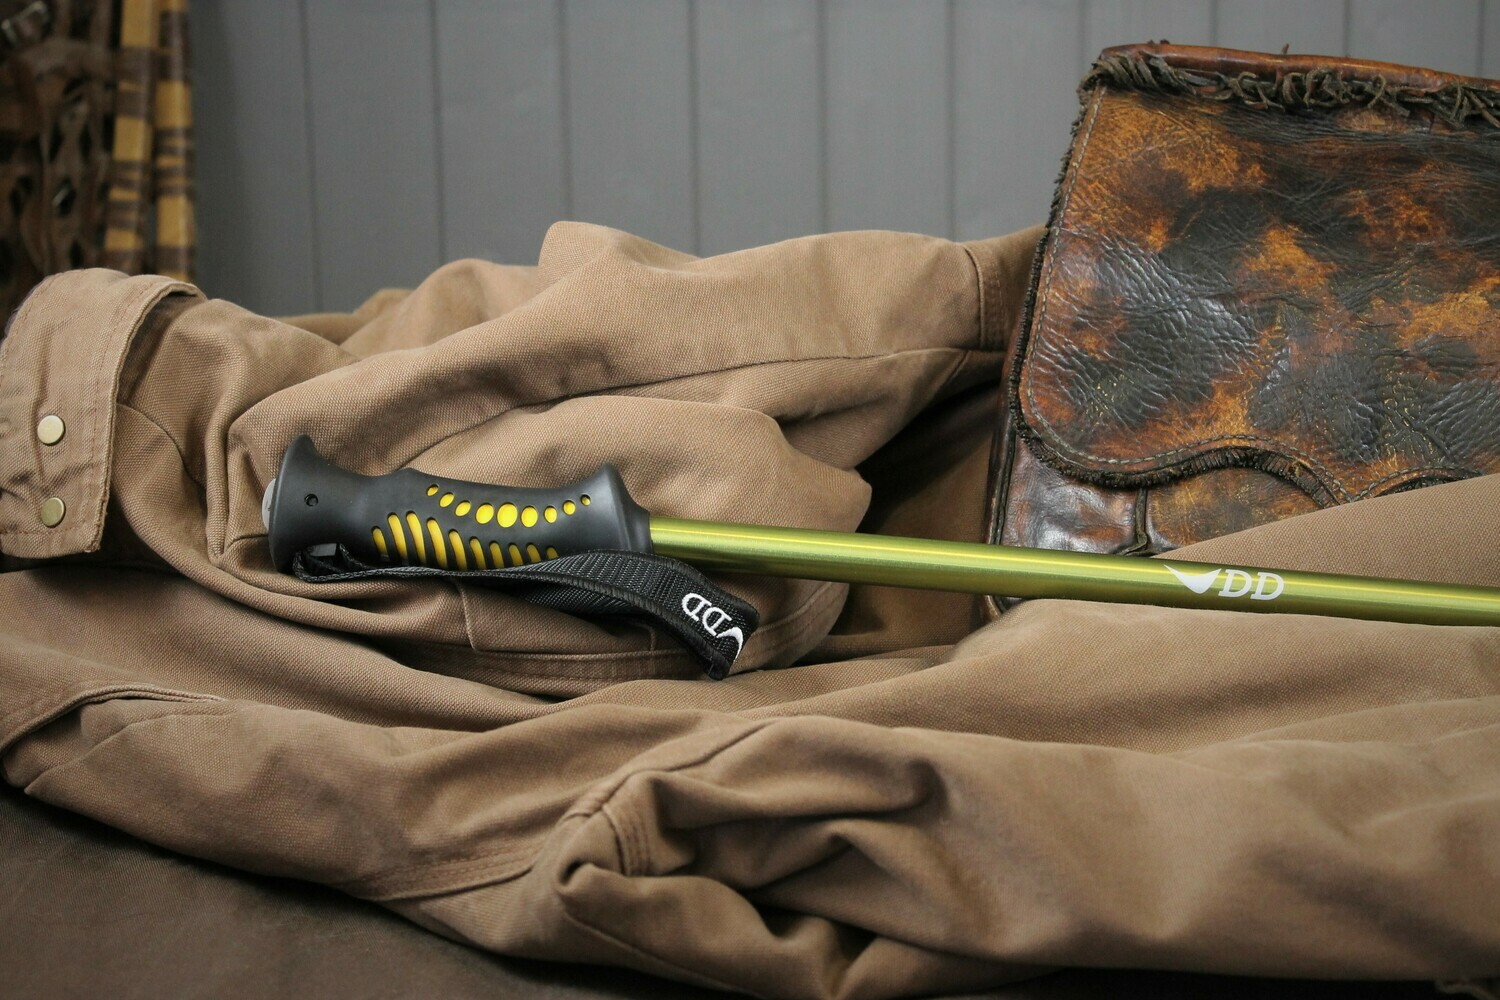 DD Extendable Hiking Pole